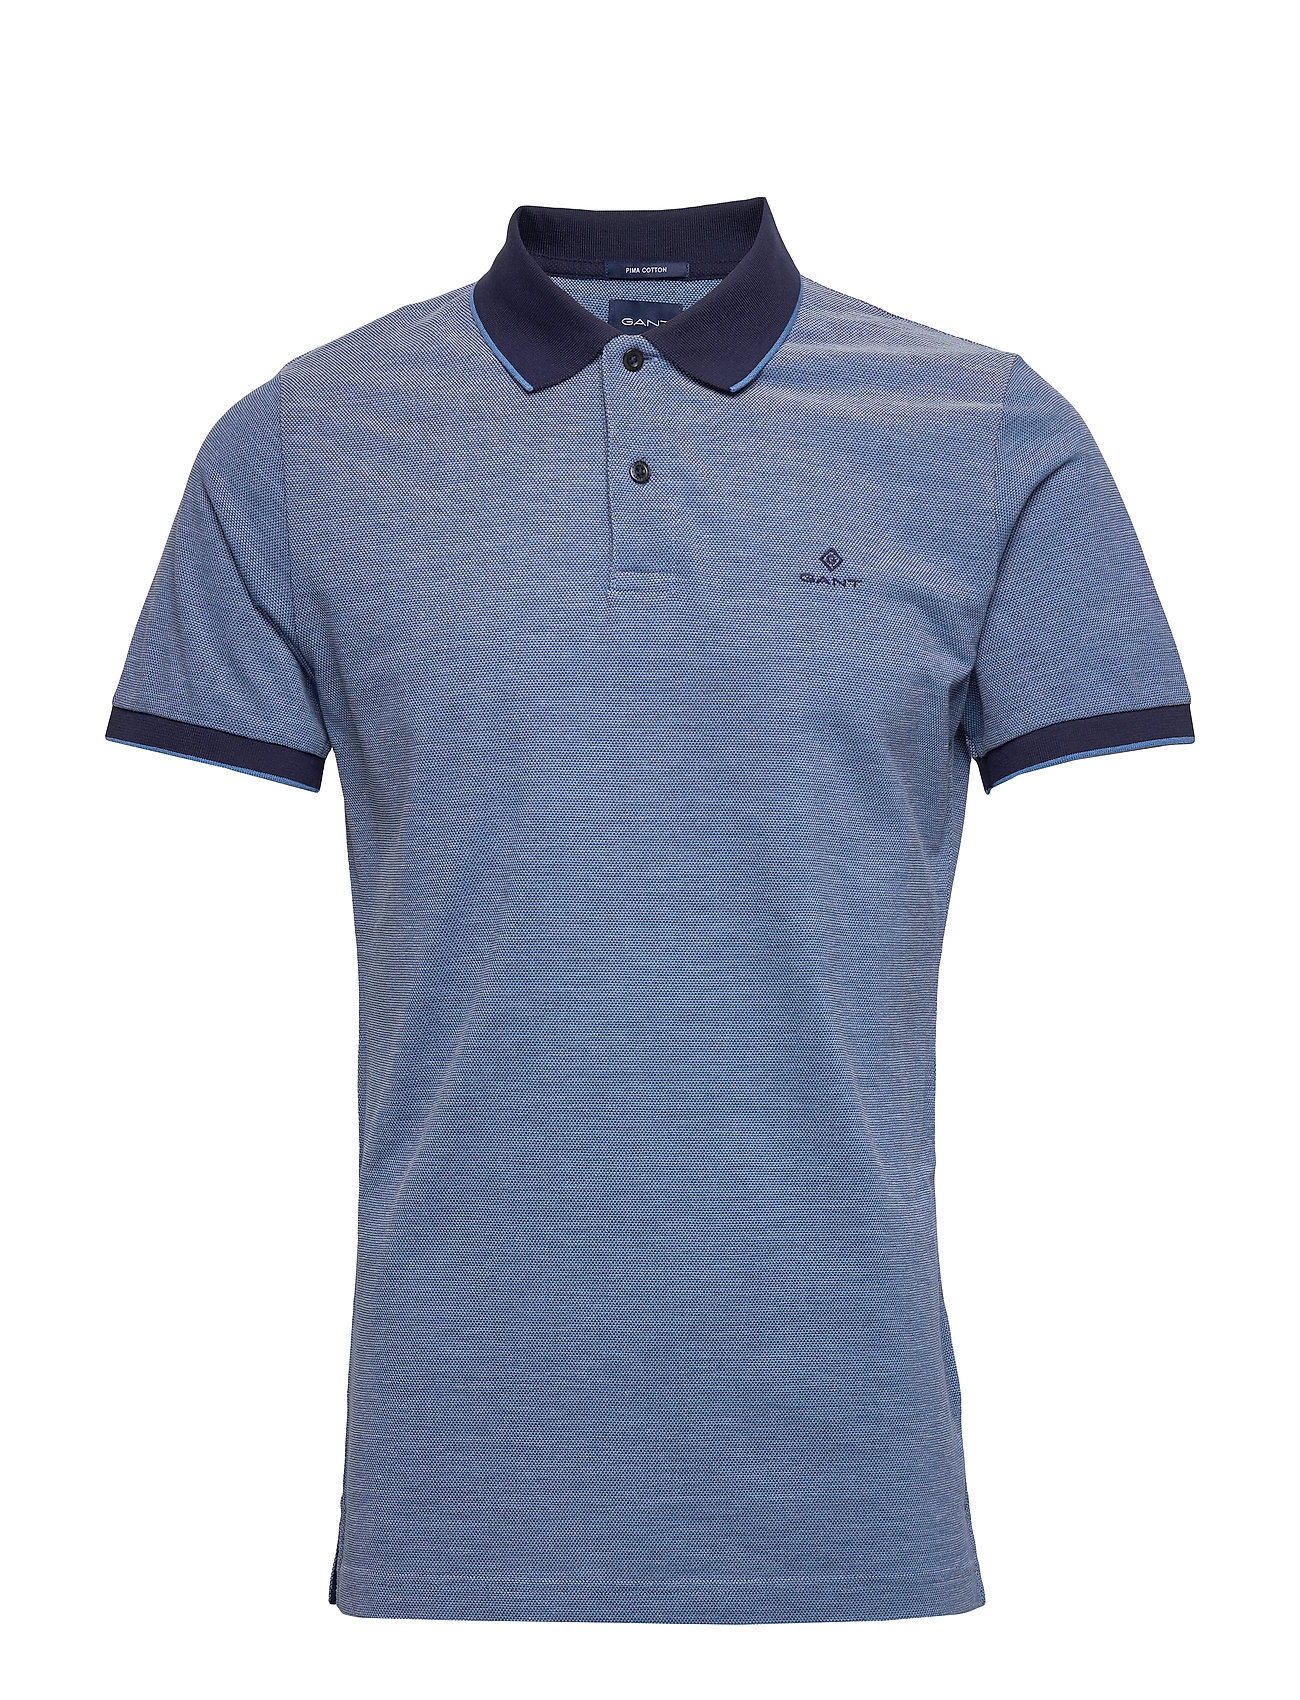 Gant D2. 4-COL OXFORD PIQUE SS RUGGER - PACIFIC BLUE